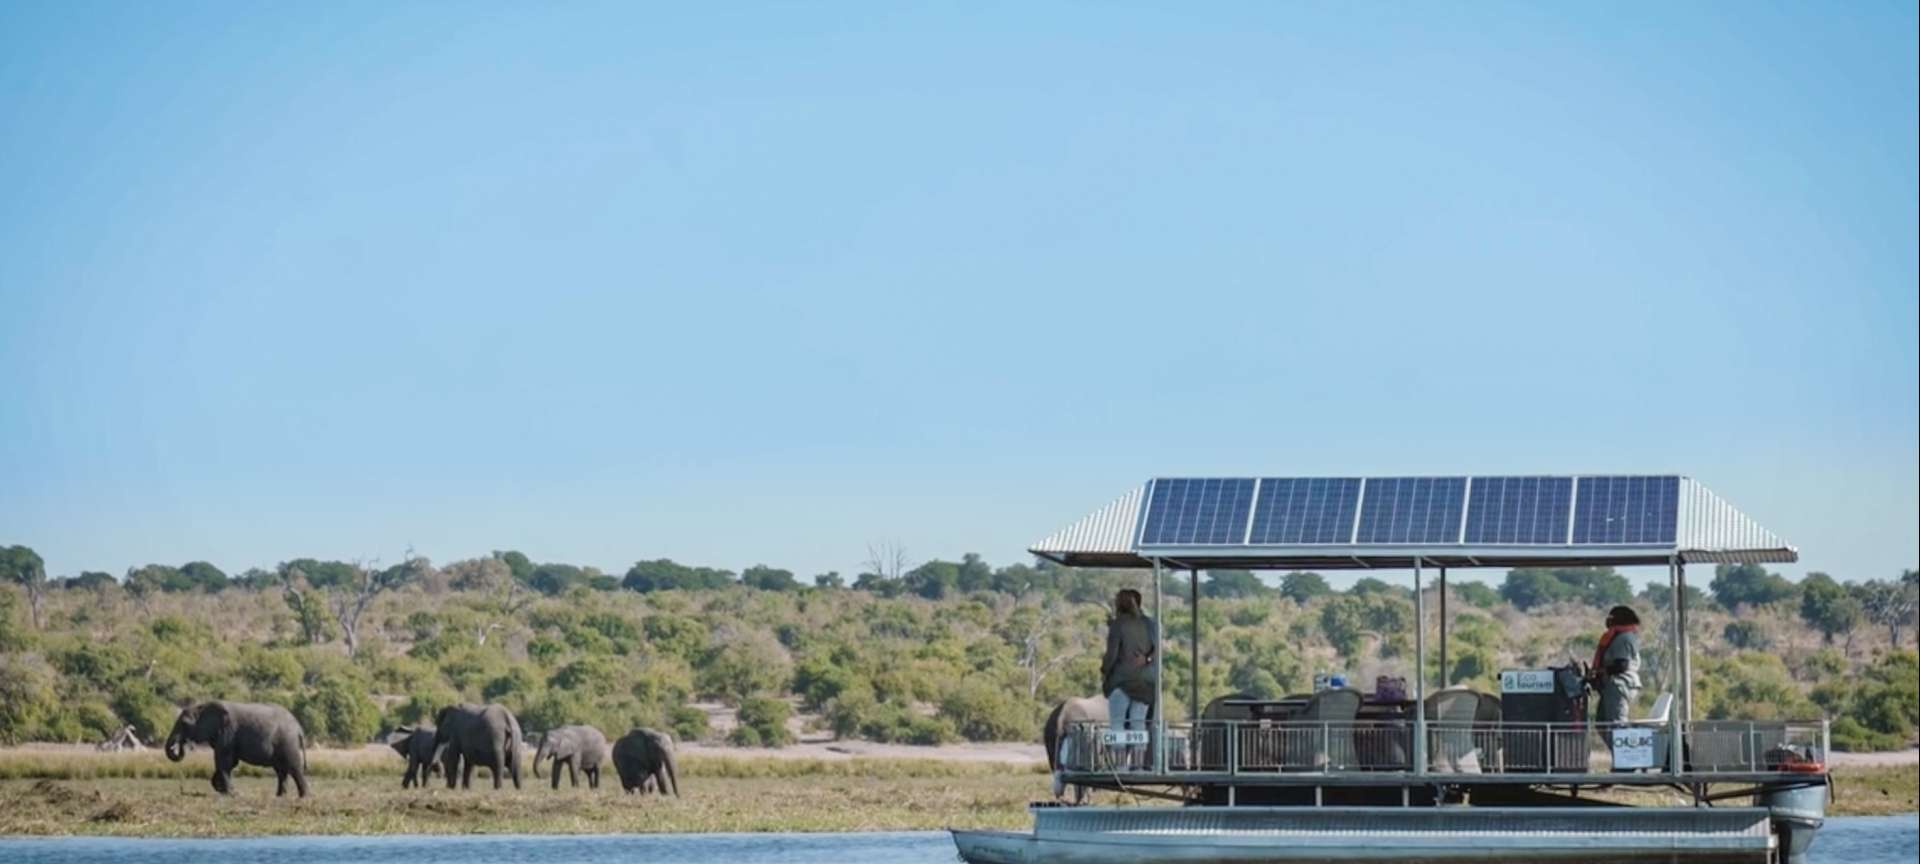 Houseboating on the Chobe